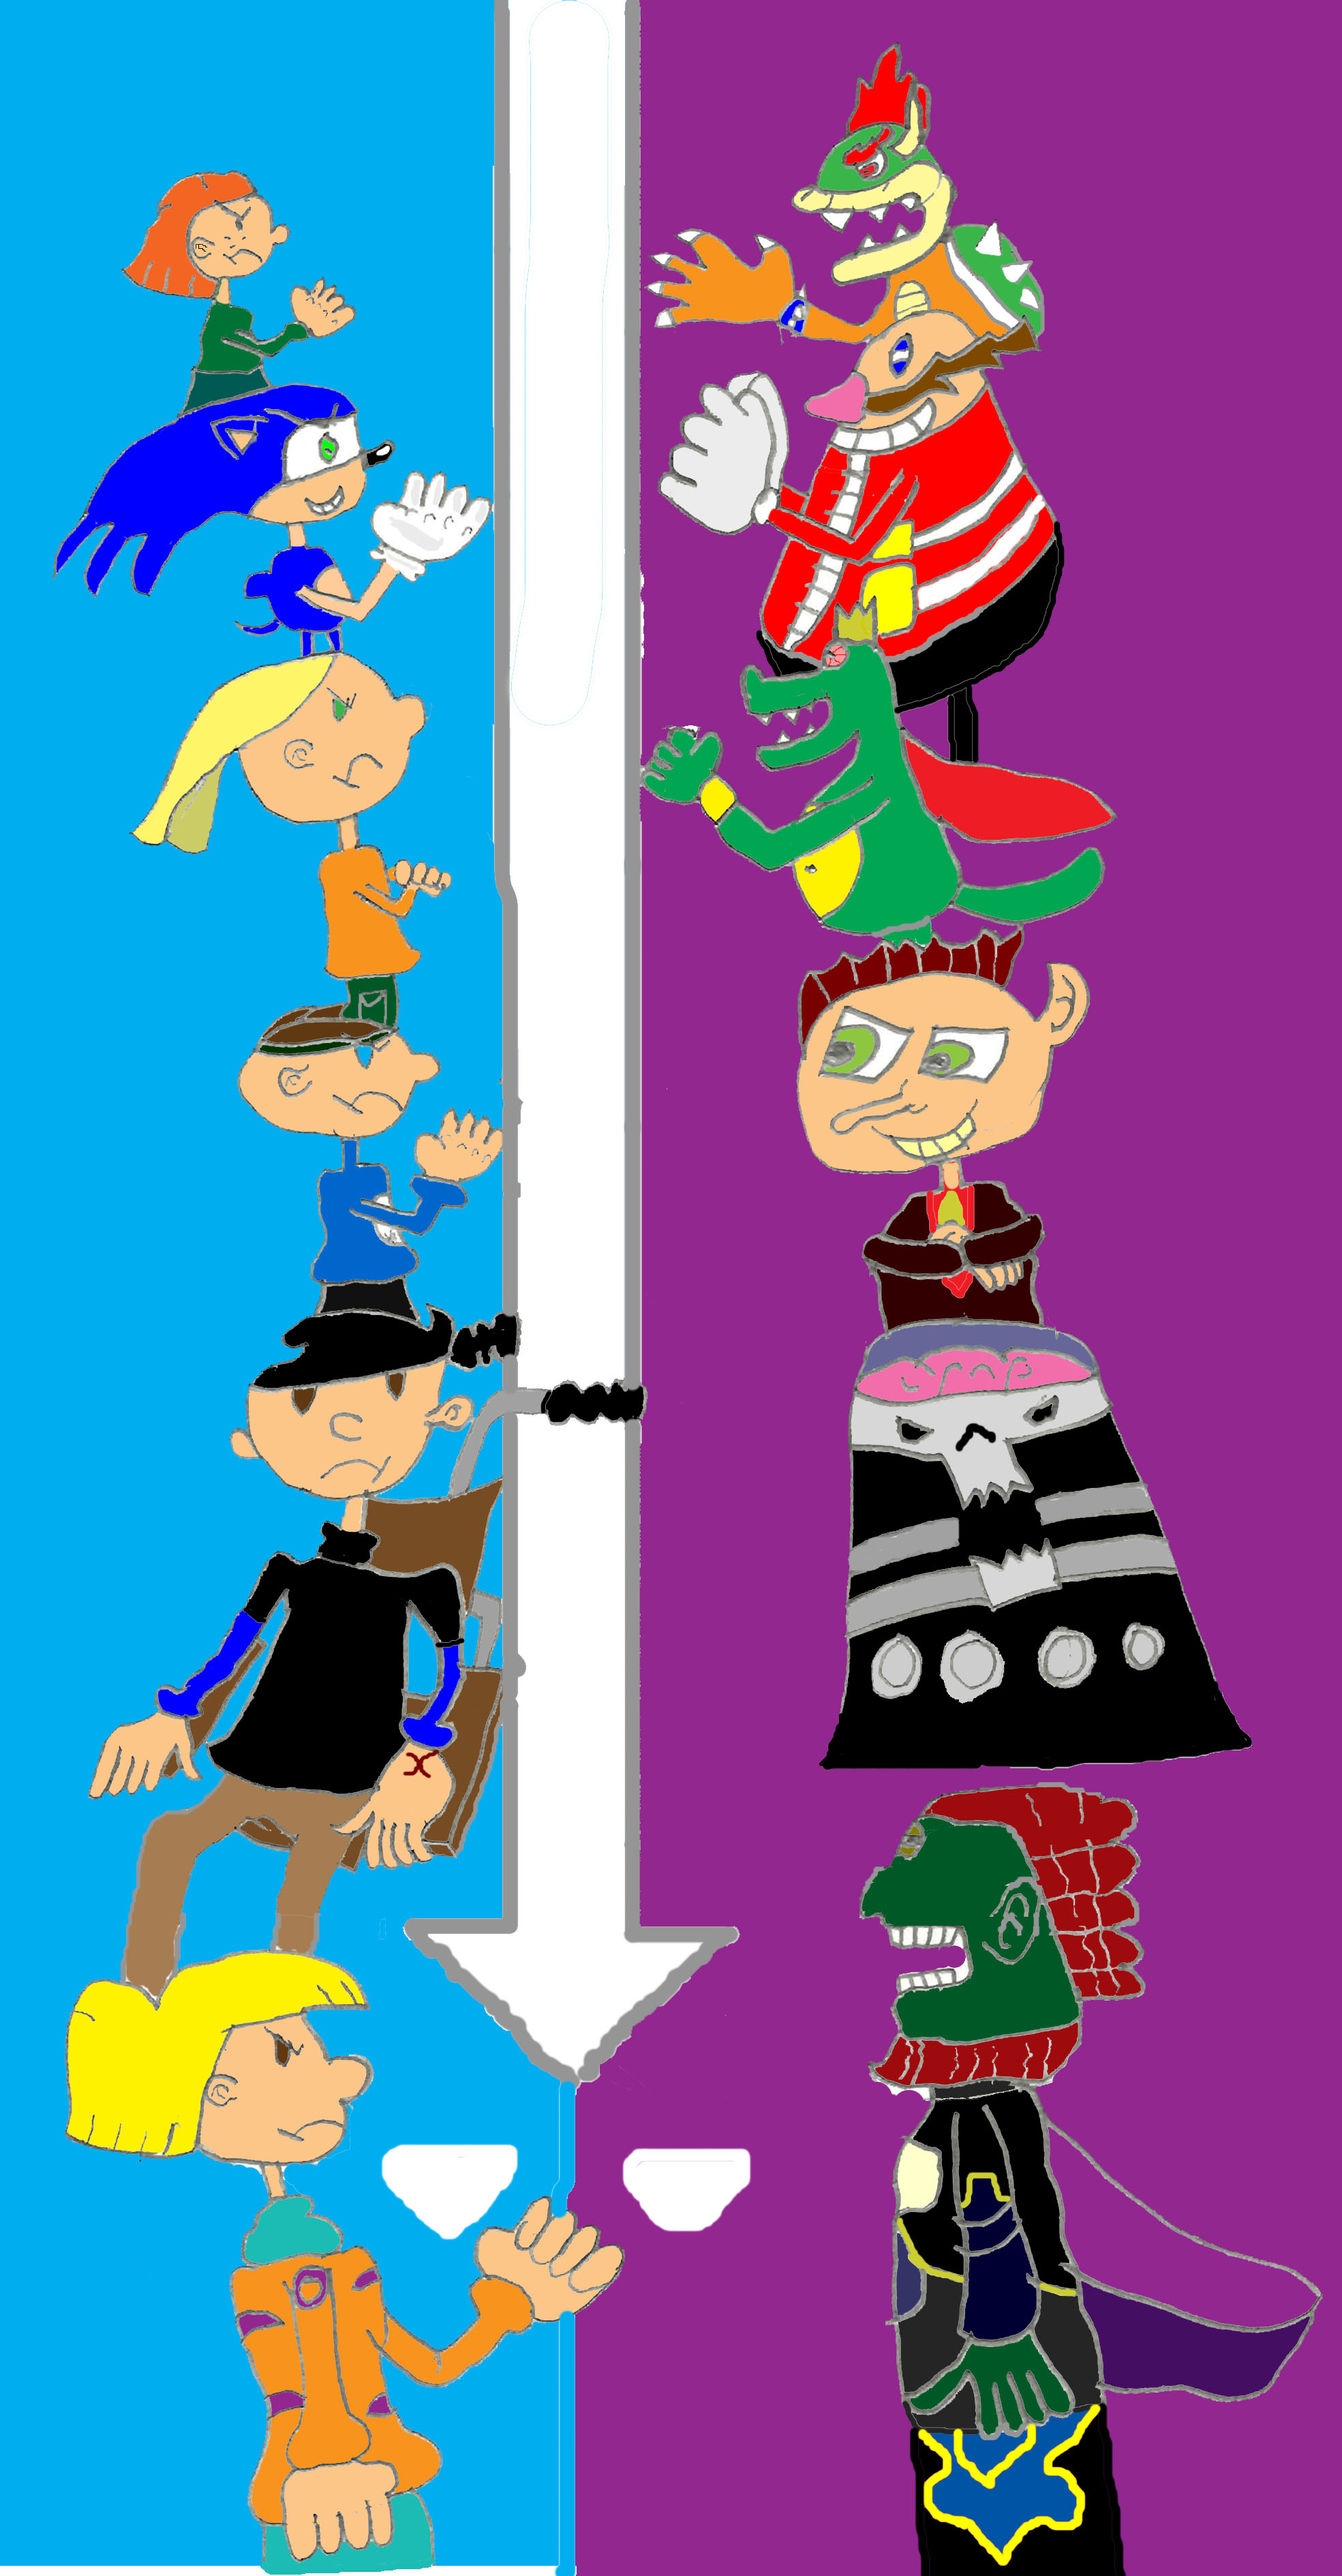 Legend of the Eight Firstborn  sc 1 st  CodenameKids Next Door Wiki - Fandom & Legend of the Eight Firstborn | Codename:Kids Next Door Wiki ...